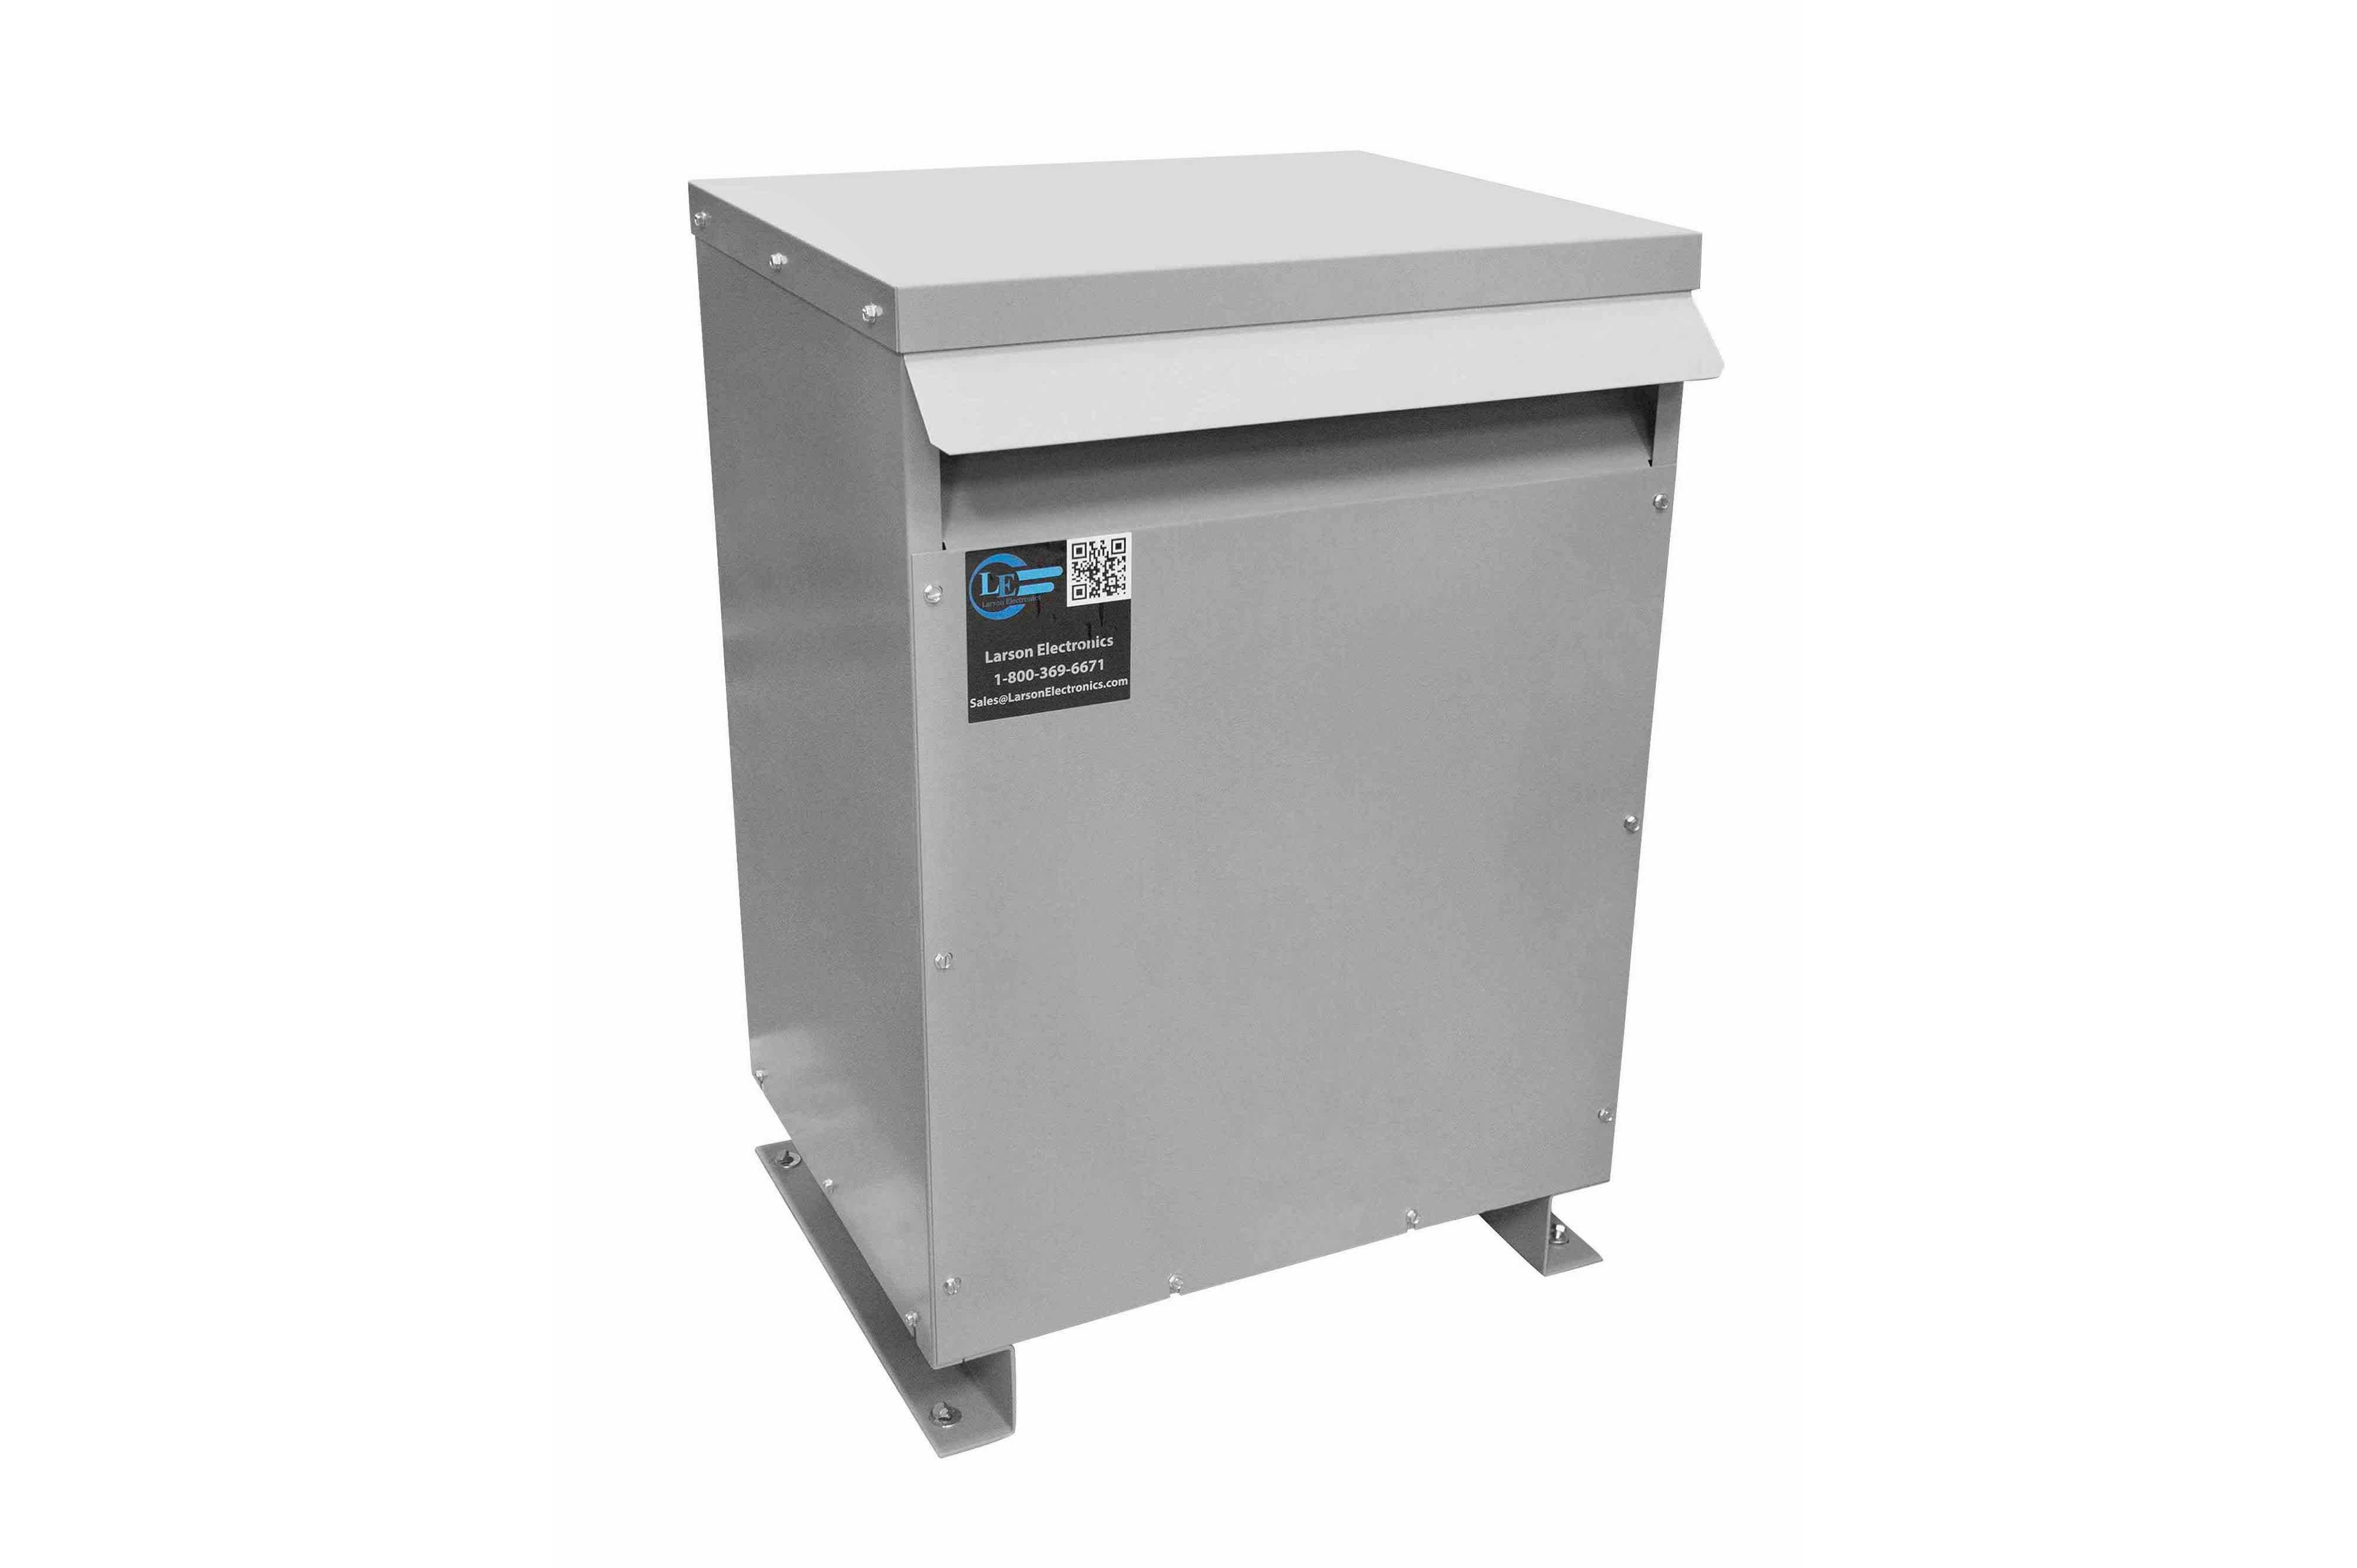 90 kVA 3PH Isolation Transformer, 460V Wye Primary, 400Y/231 Wye-N Secondary, N3R, Ventilated, 60 Hz